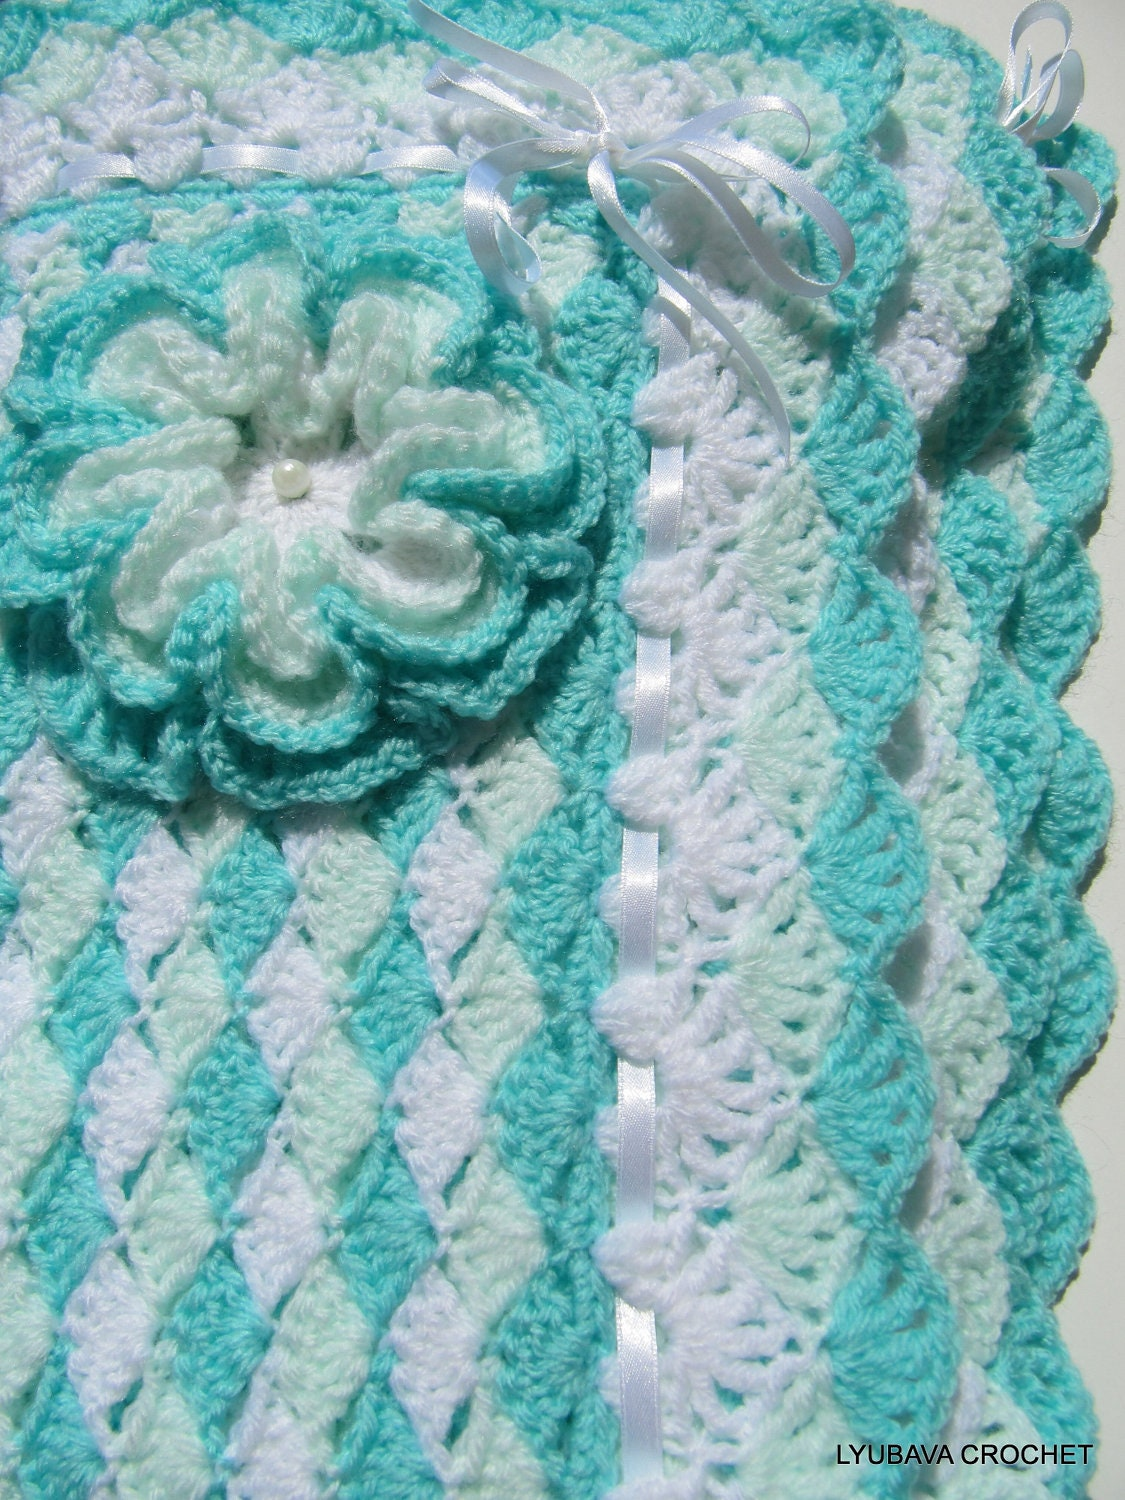 Crochet New Stitches Pinterest : ... Turquoise With By LyubavaCrochet. New Crochet Patterns From Pinterest